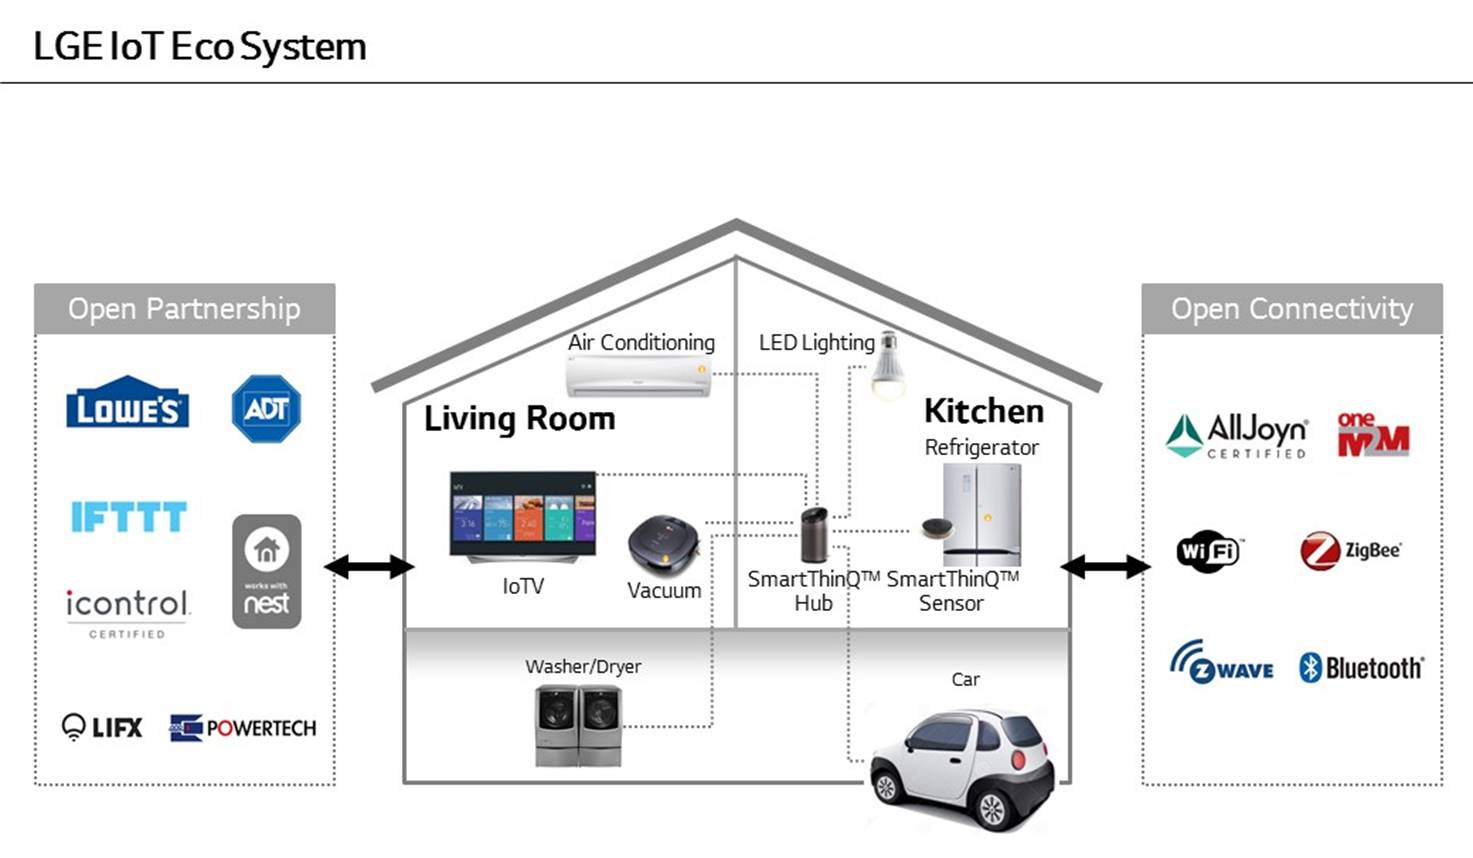 LG internet of things Ecosystem